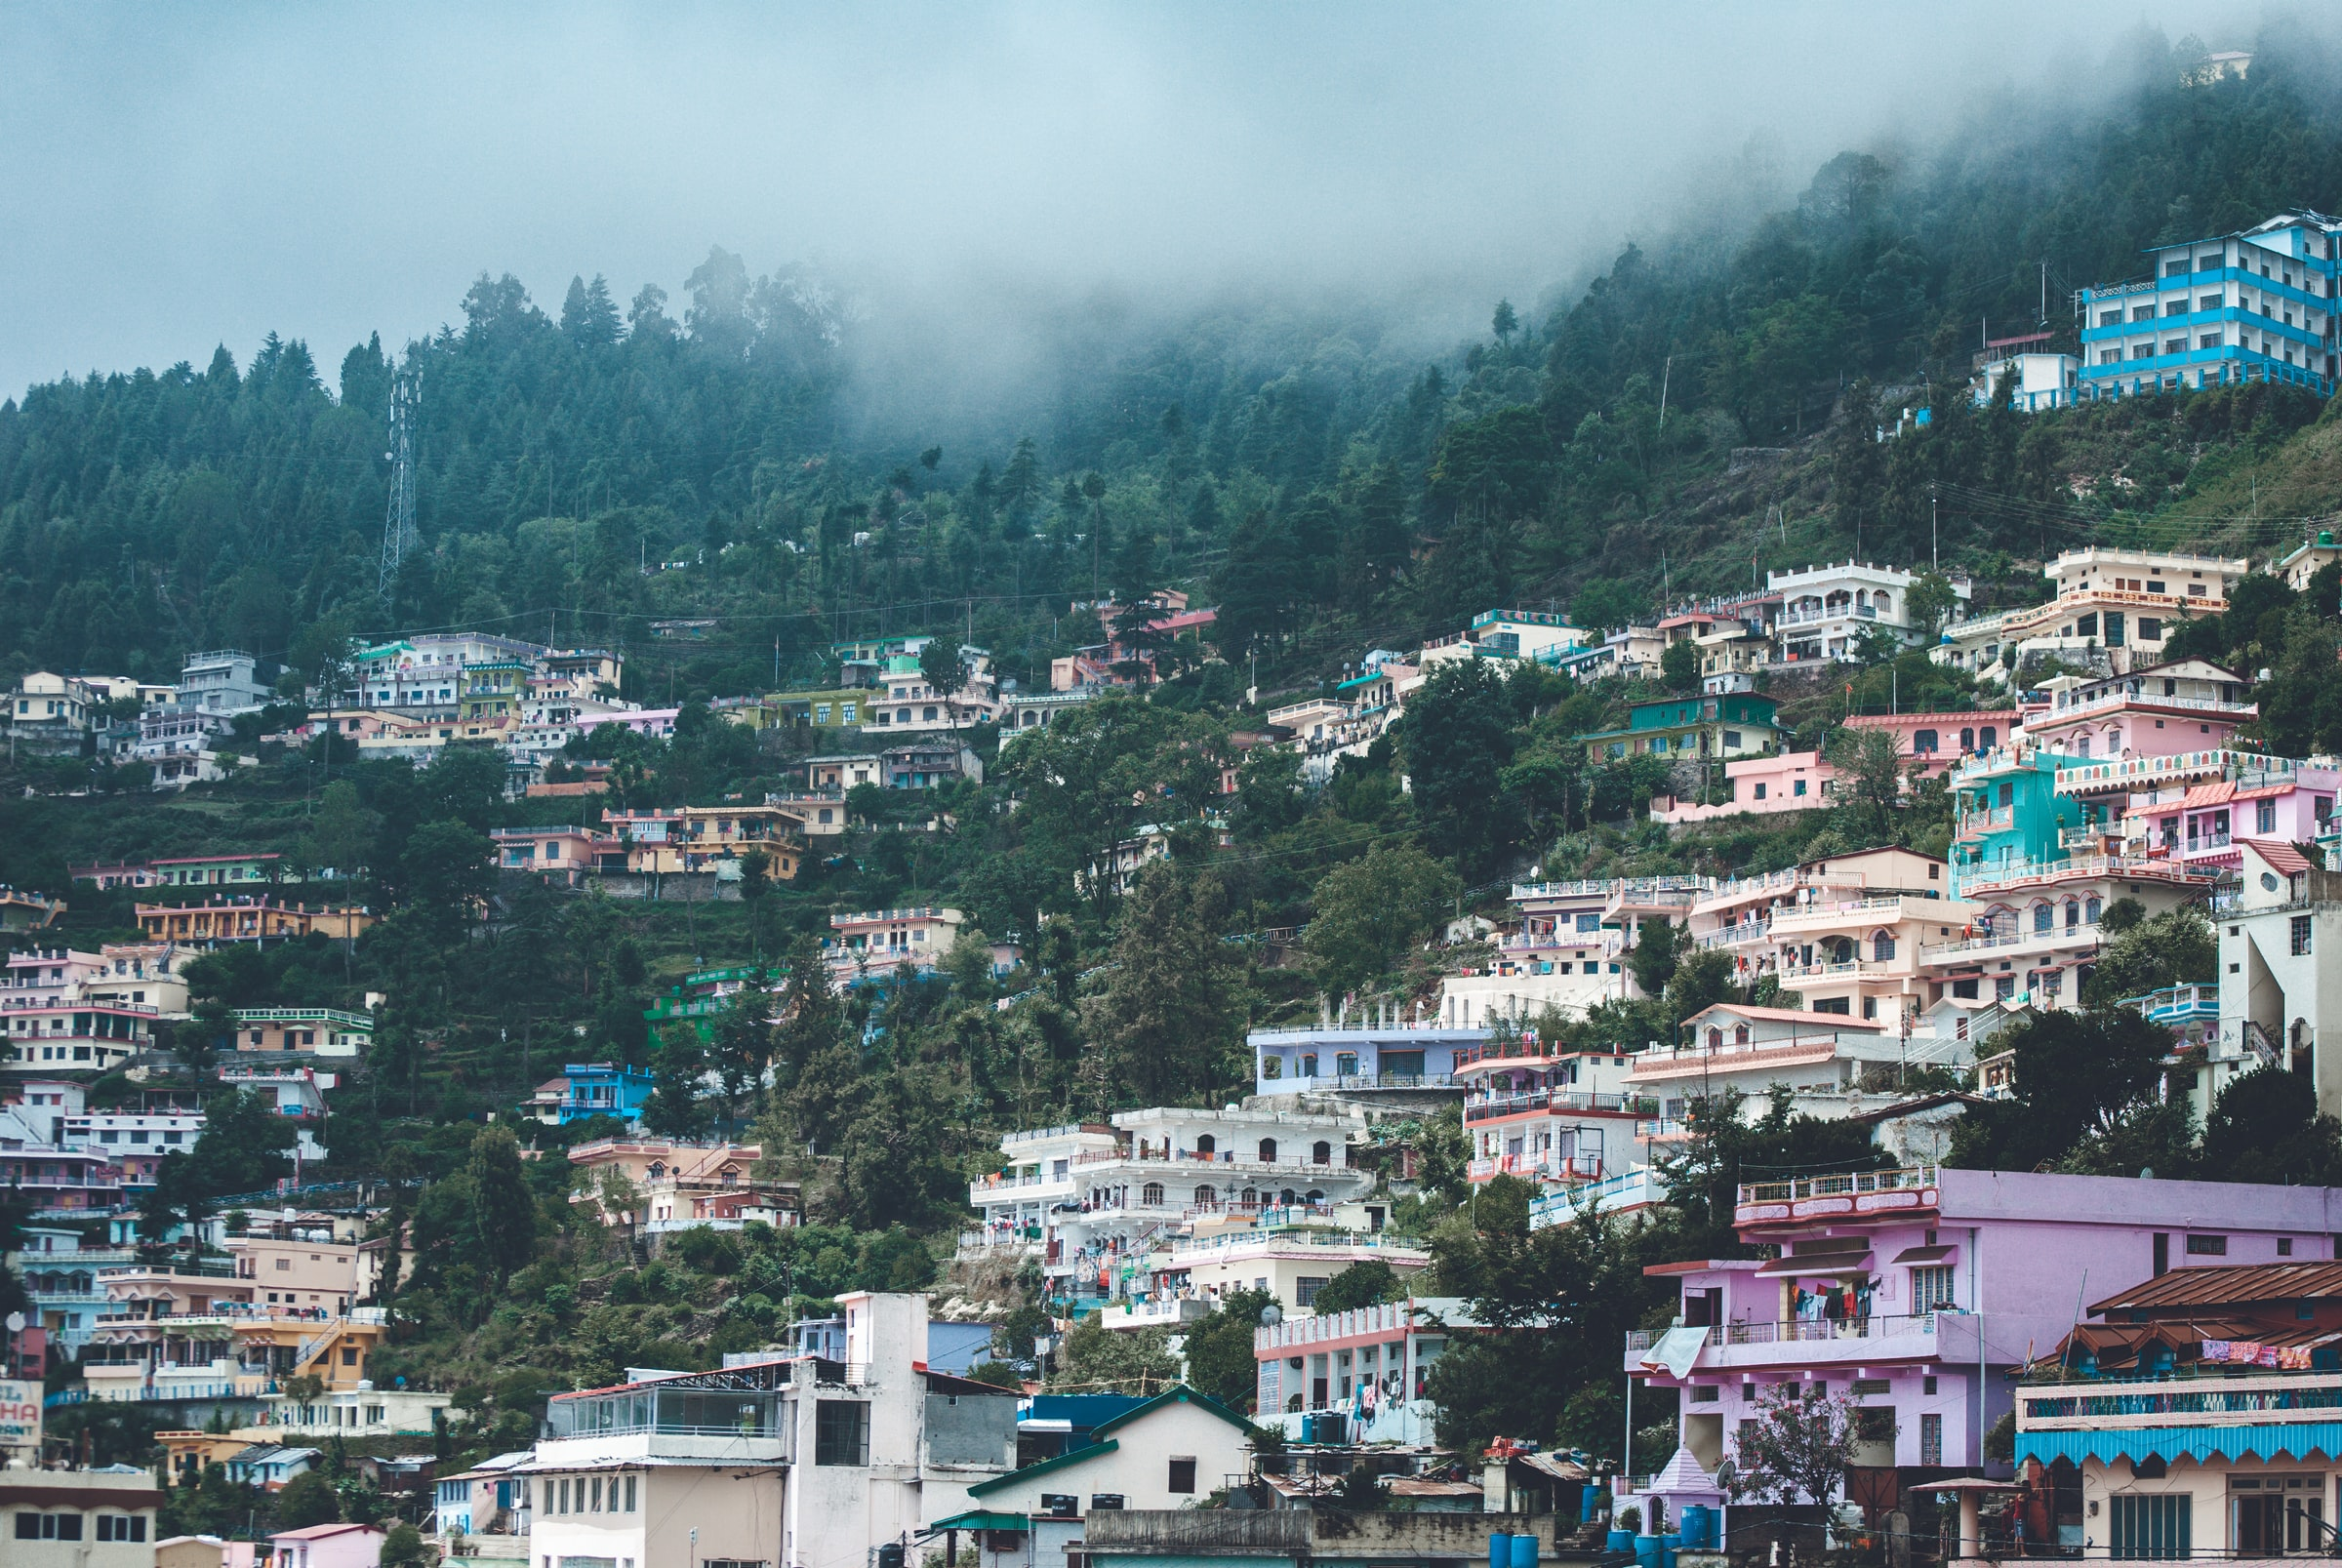 Sightseeing in Mussorie, Uttarakhand